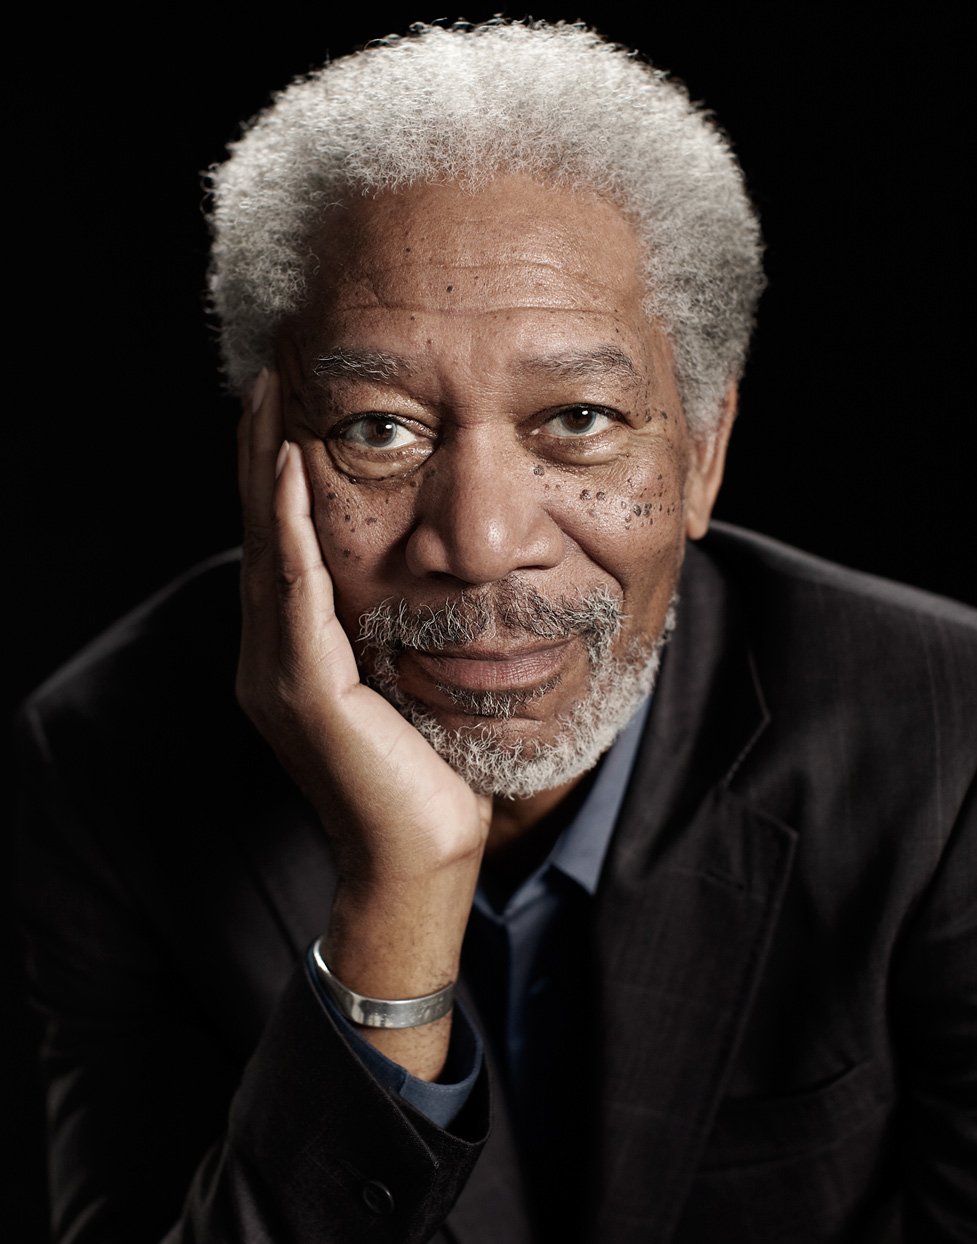 Mark DeLong - Celebrity Photographer - Morgan Freeman profile image with his right hand touching his face.